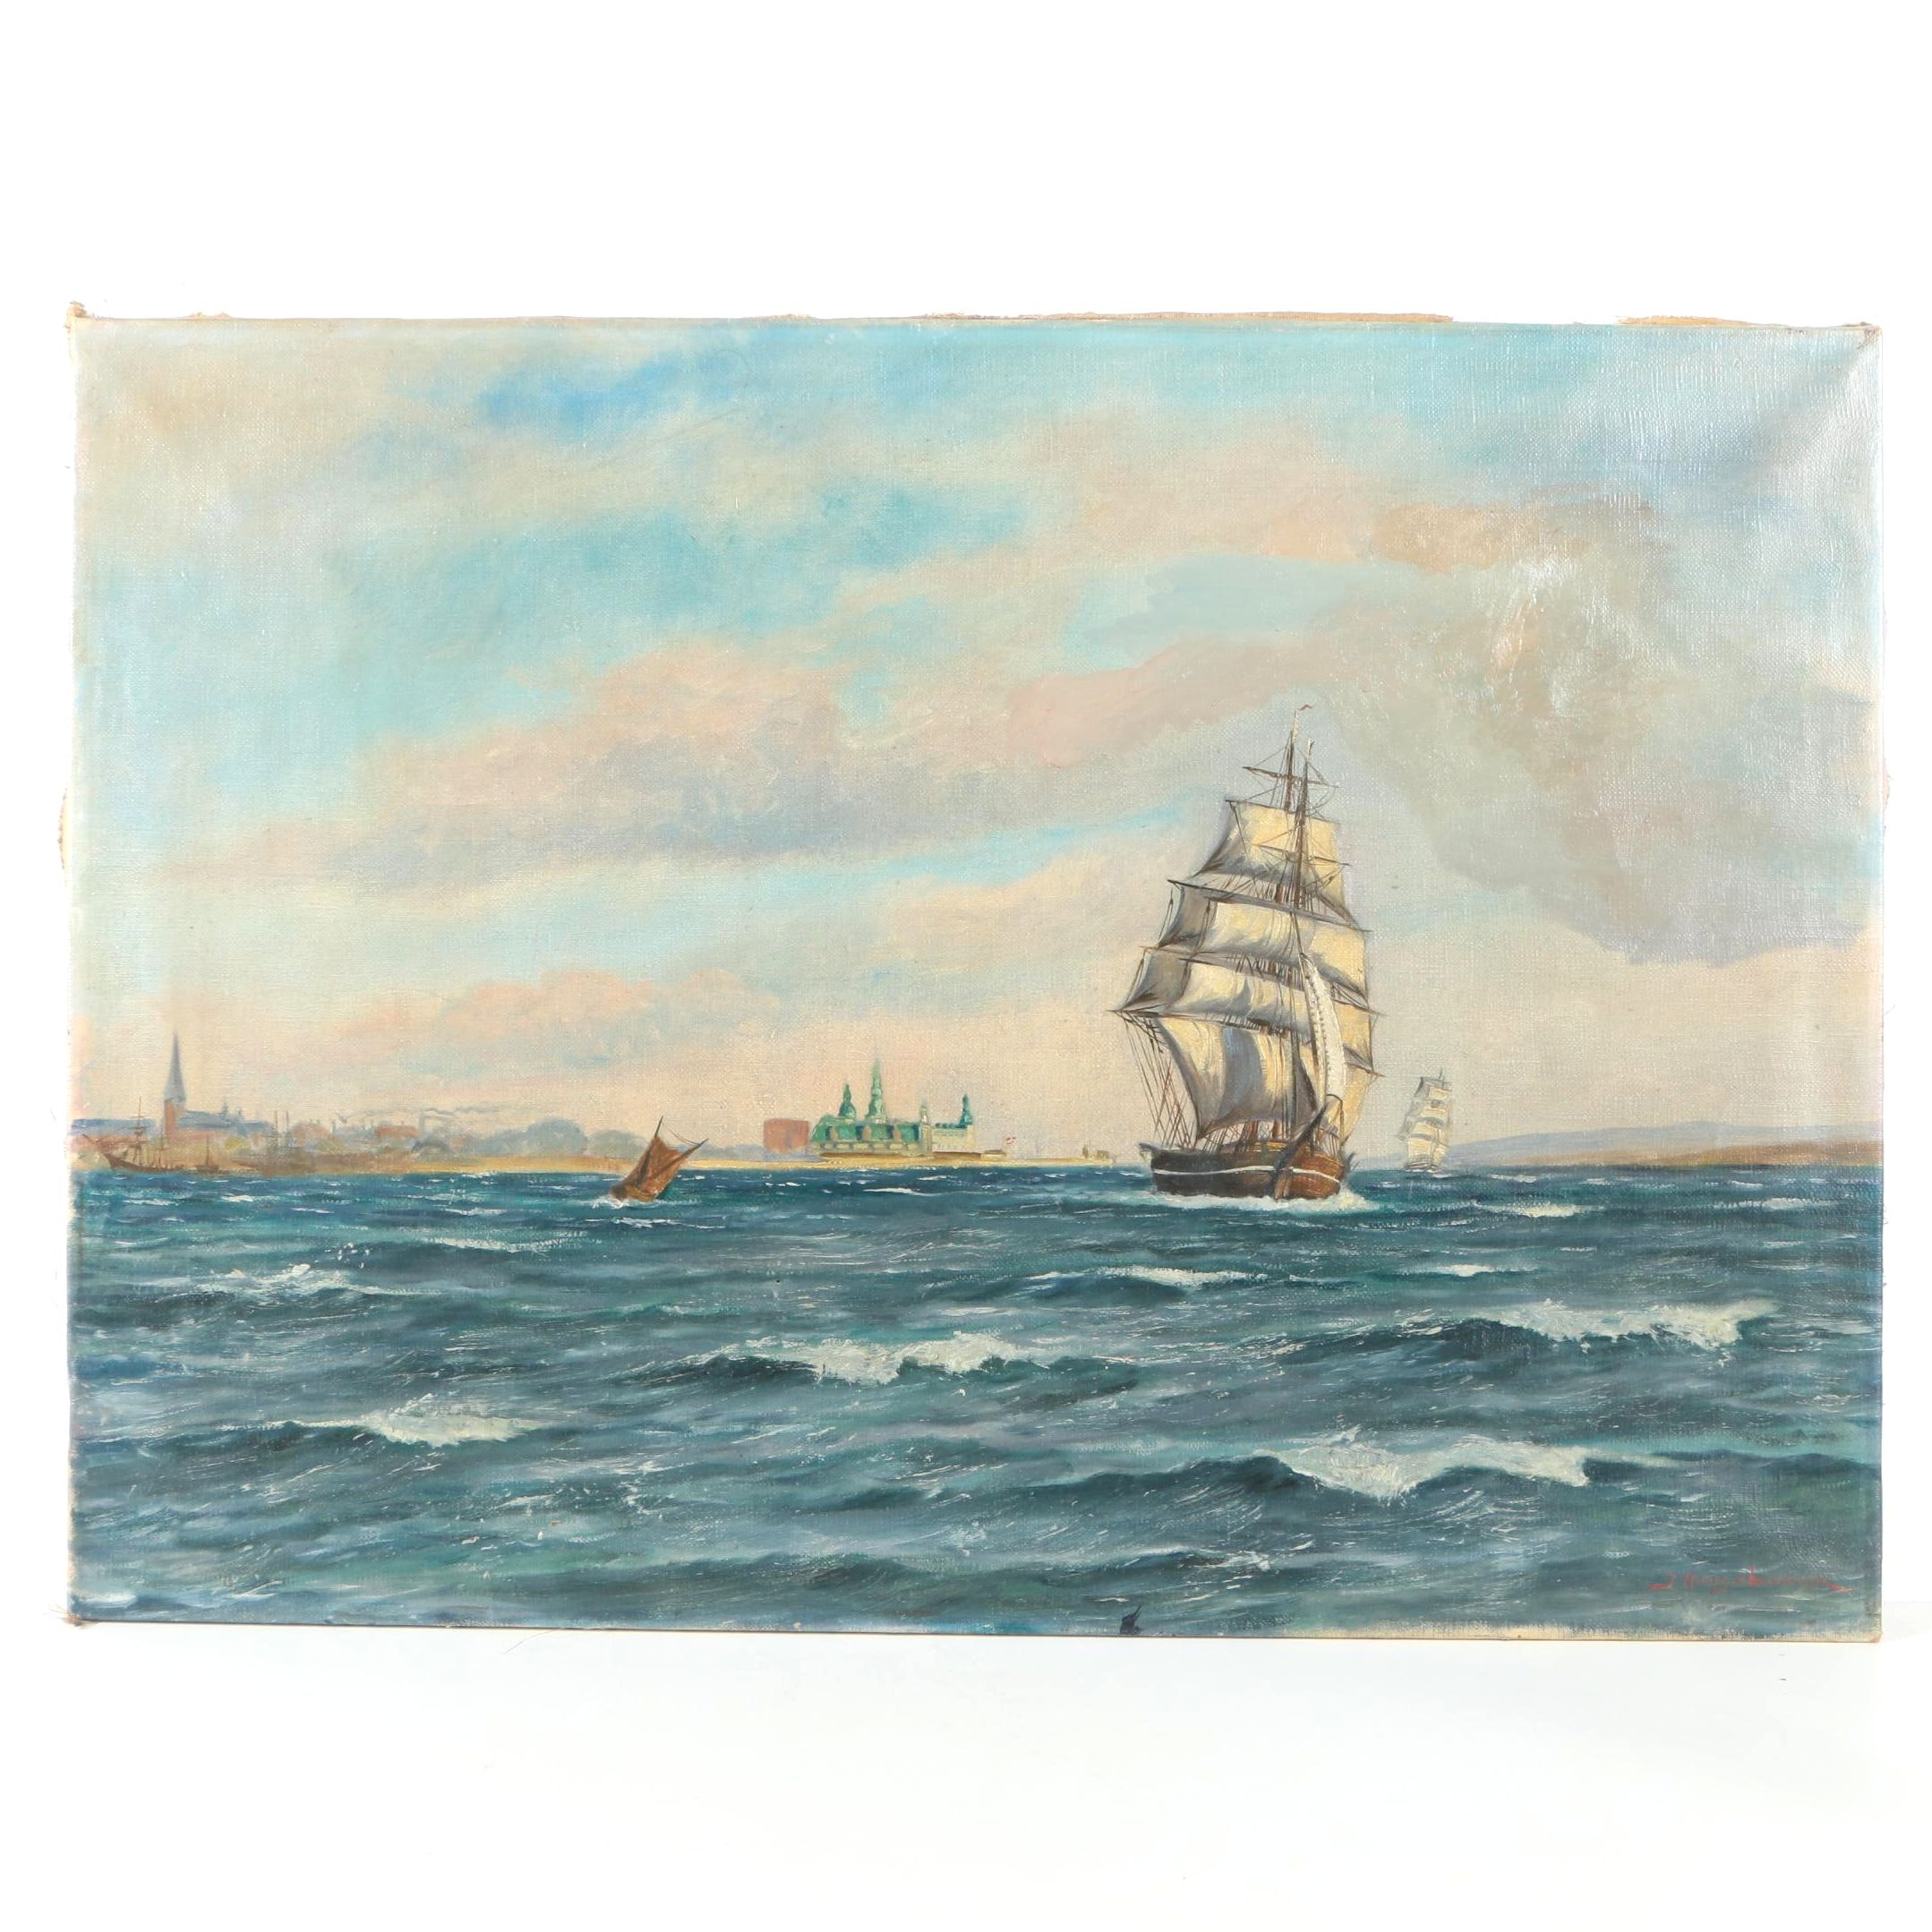 Jens Kongshammer Oil Painting on canvas of Ship Scene